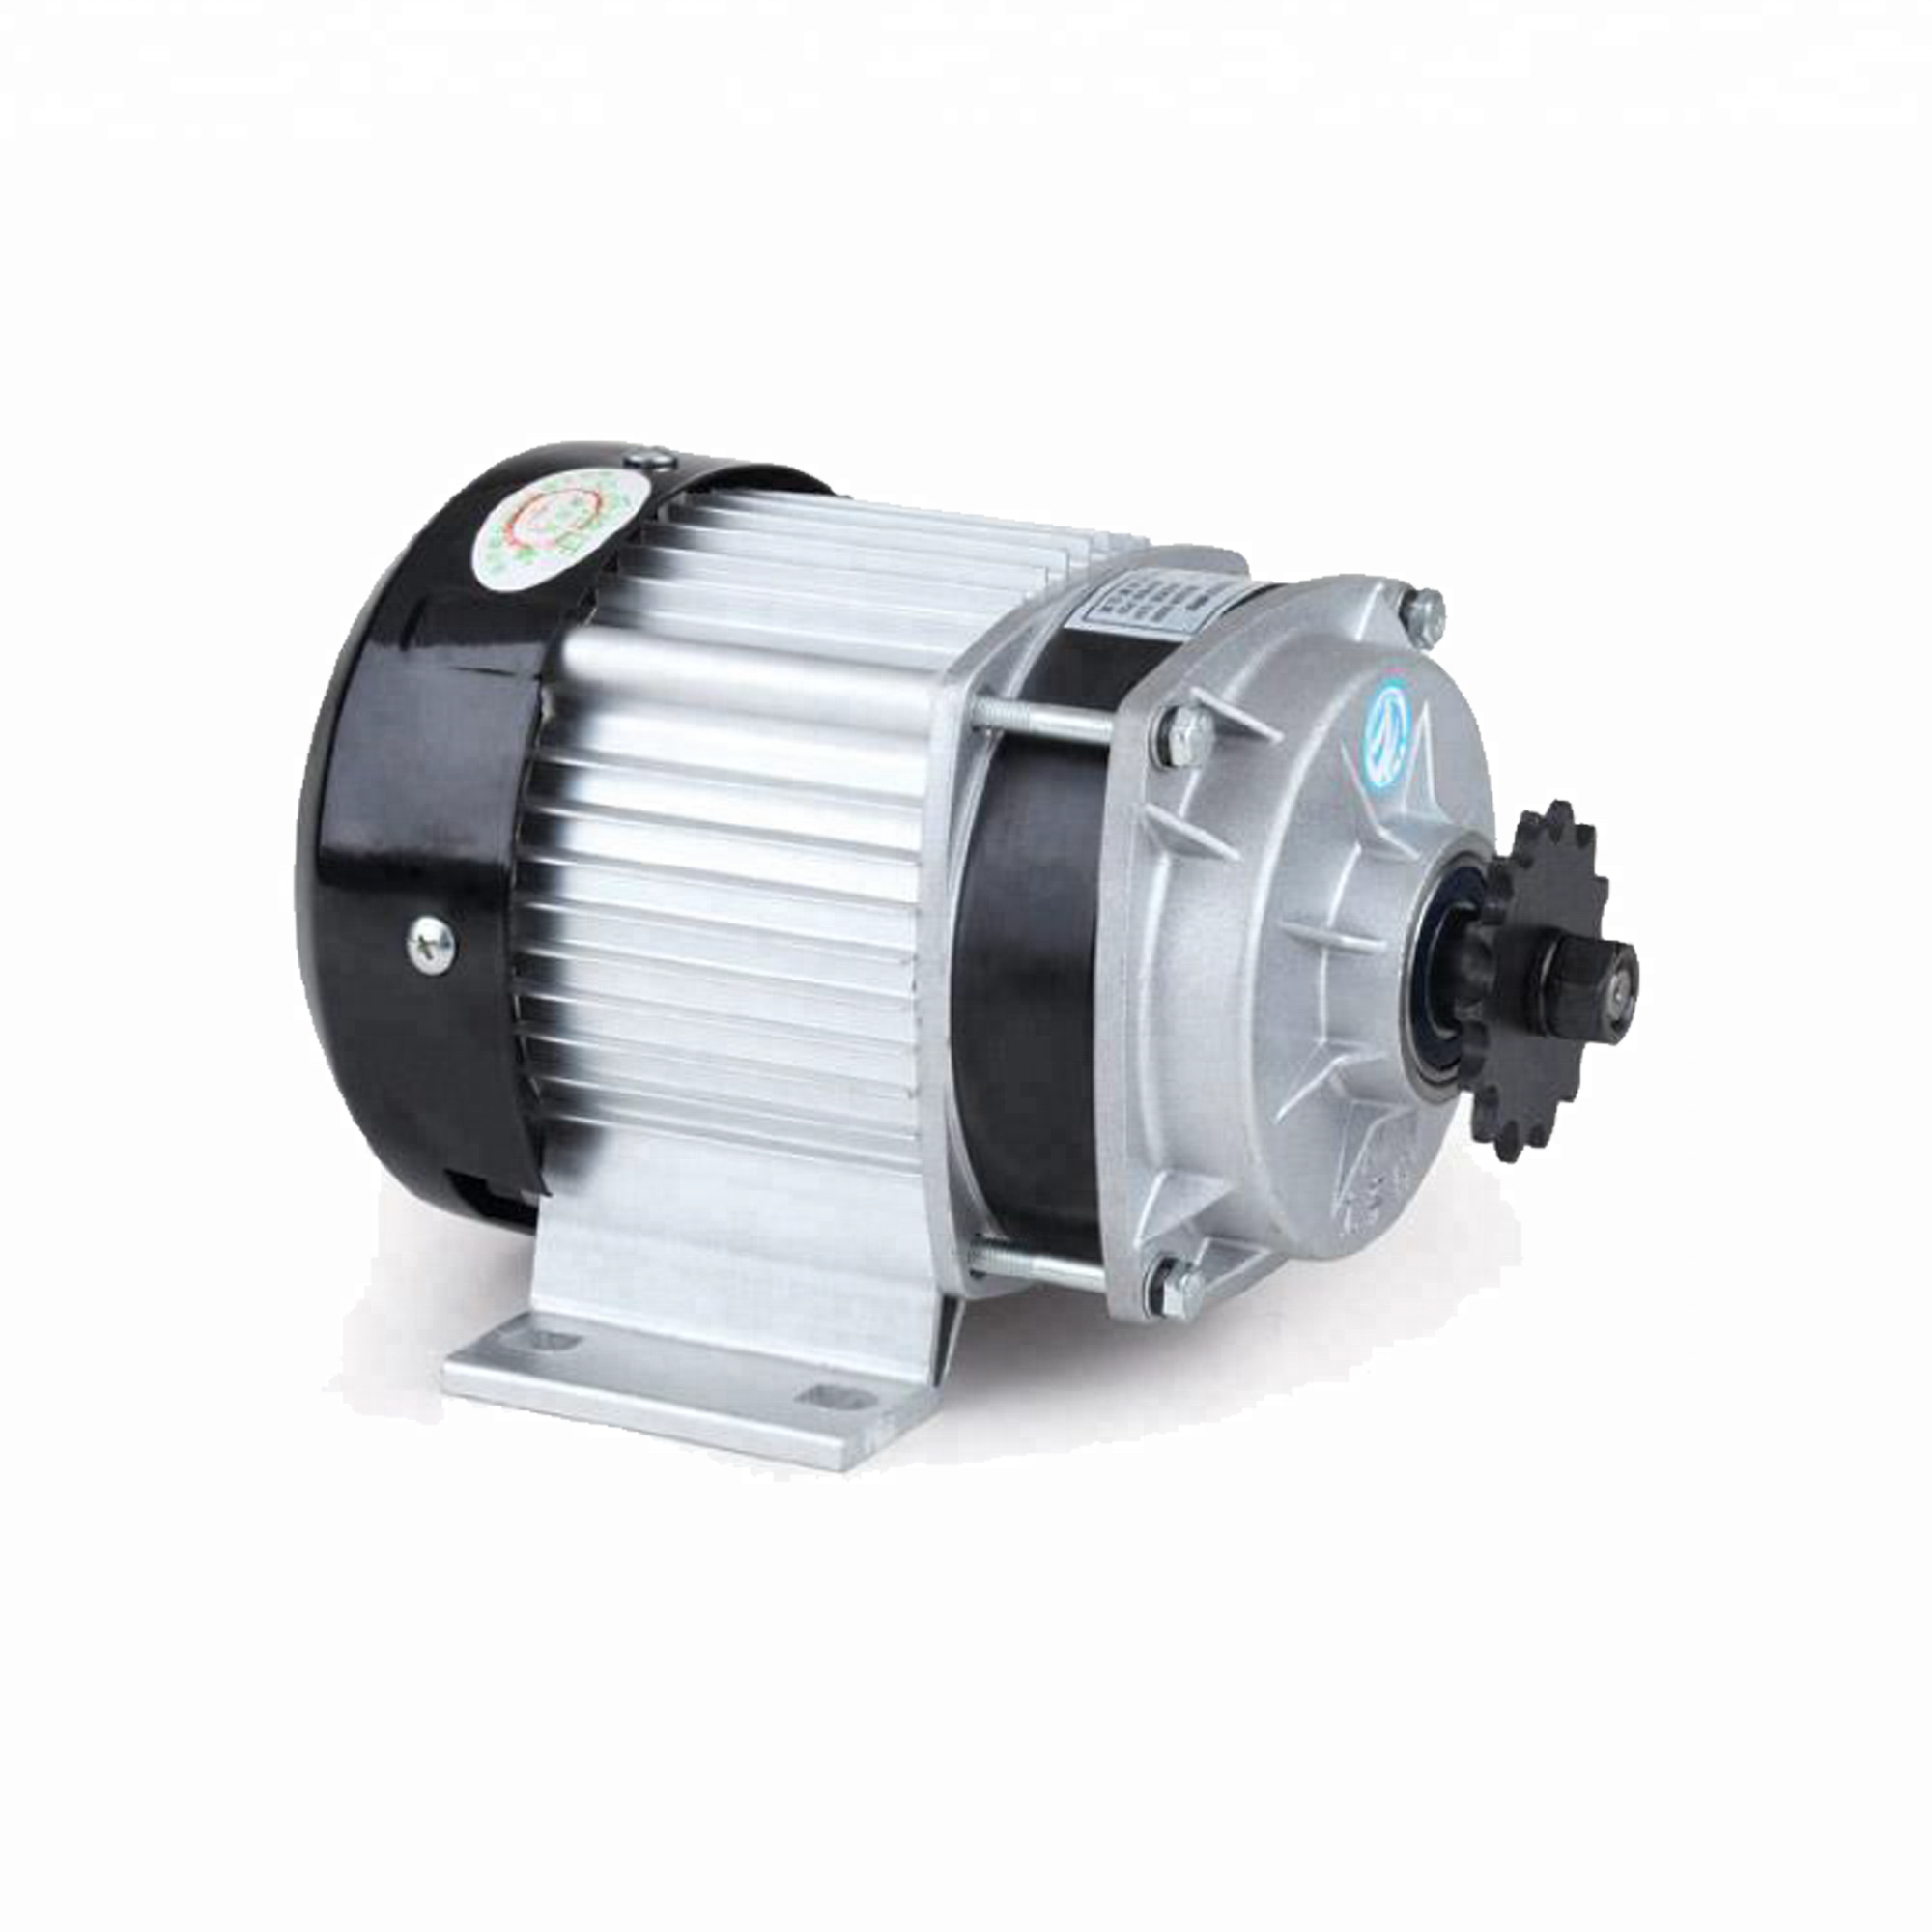 Mini Durable 7KW 7.5KW 8KW 10KW 12KW Brushless Permanent Magnet DC motor 72VDC 144VDC linear actuator 12v dc motor with OEM, ODM